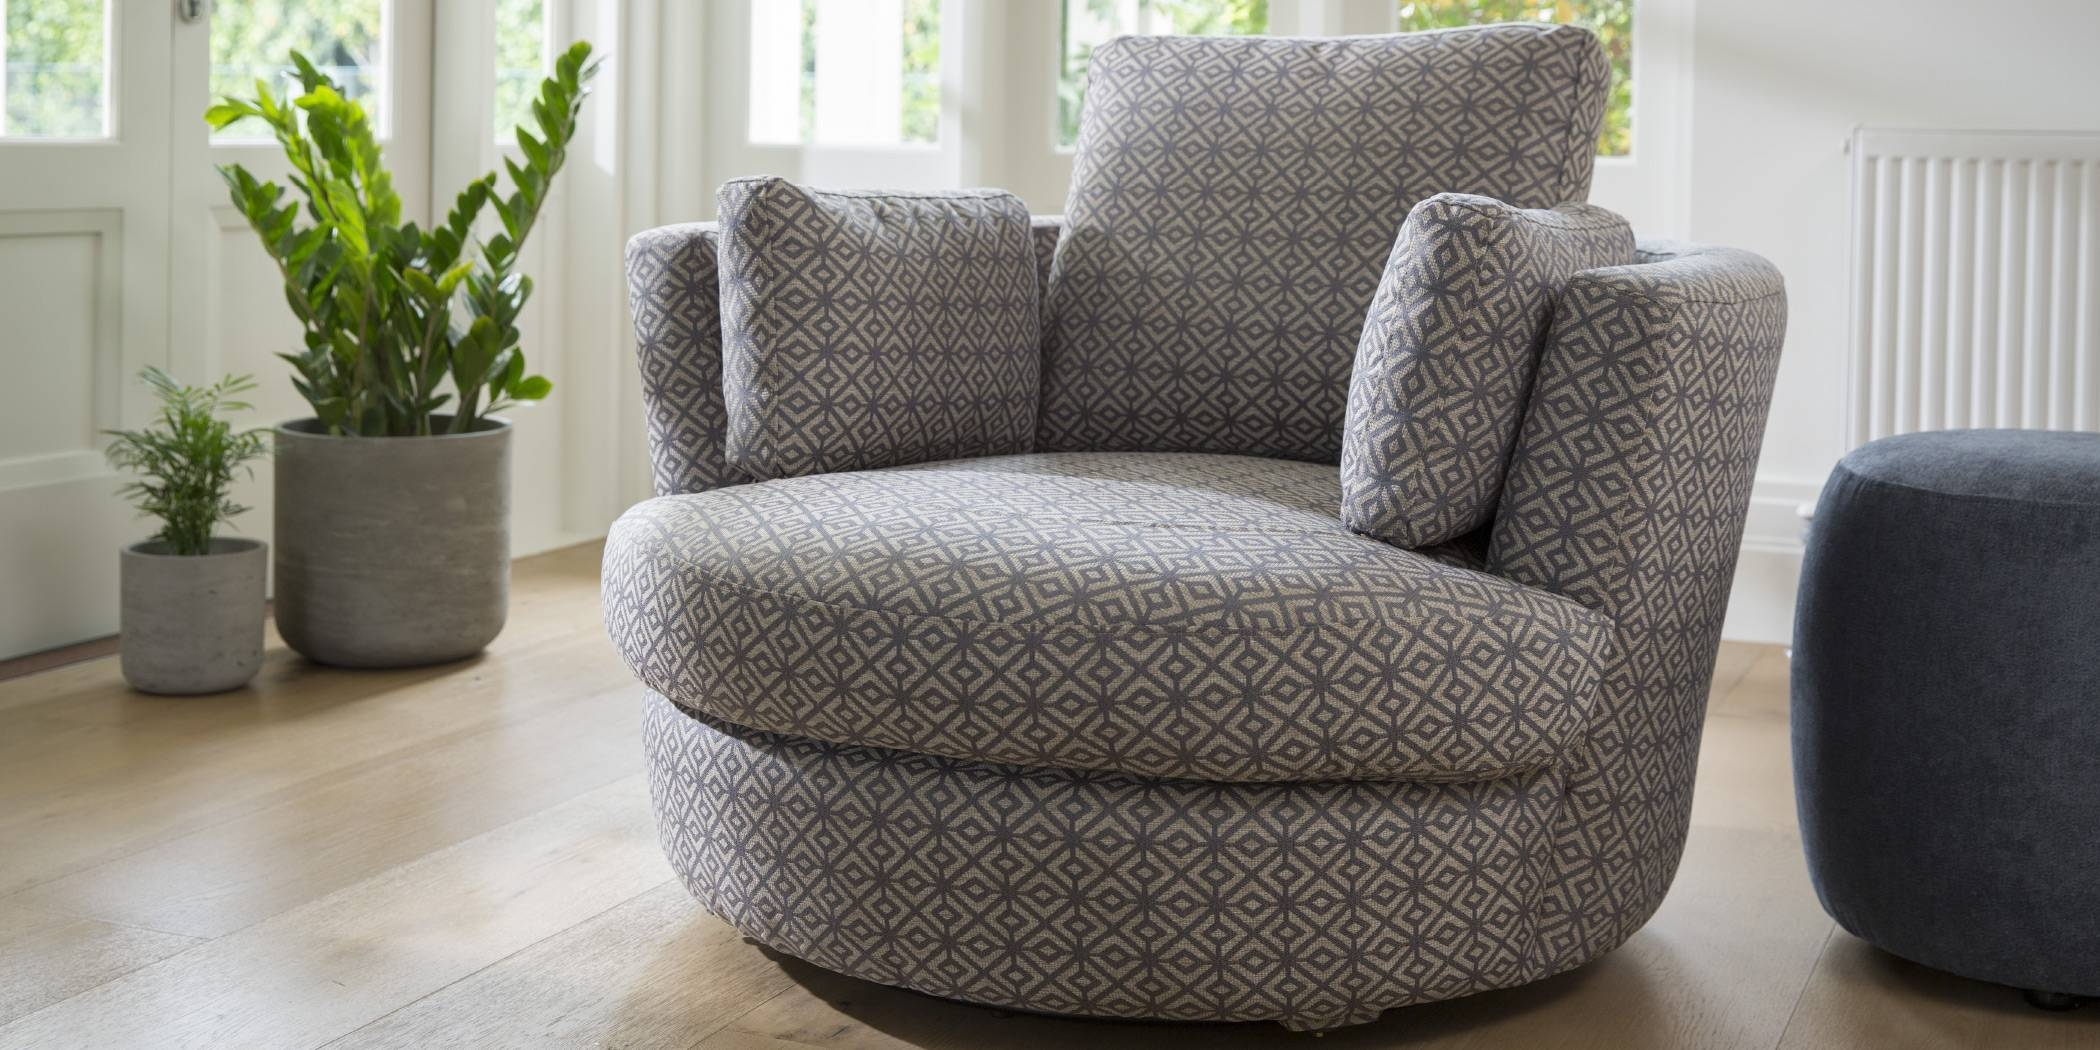 Snuggle Petite Chair | Leather, Fabric, Occasional Chairs | Plush within Snuggle Sofas (Image 25 of 30)